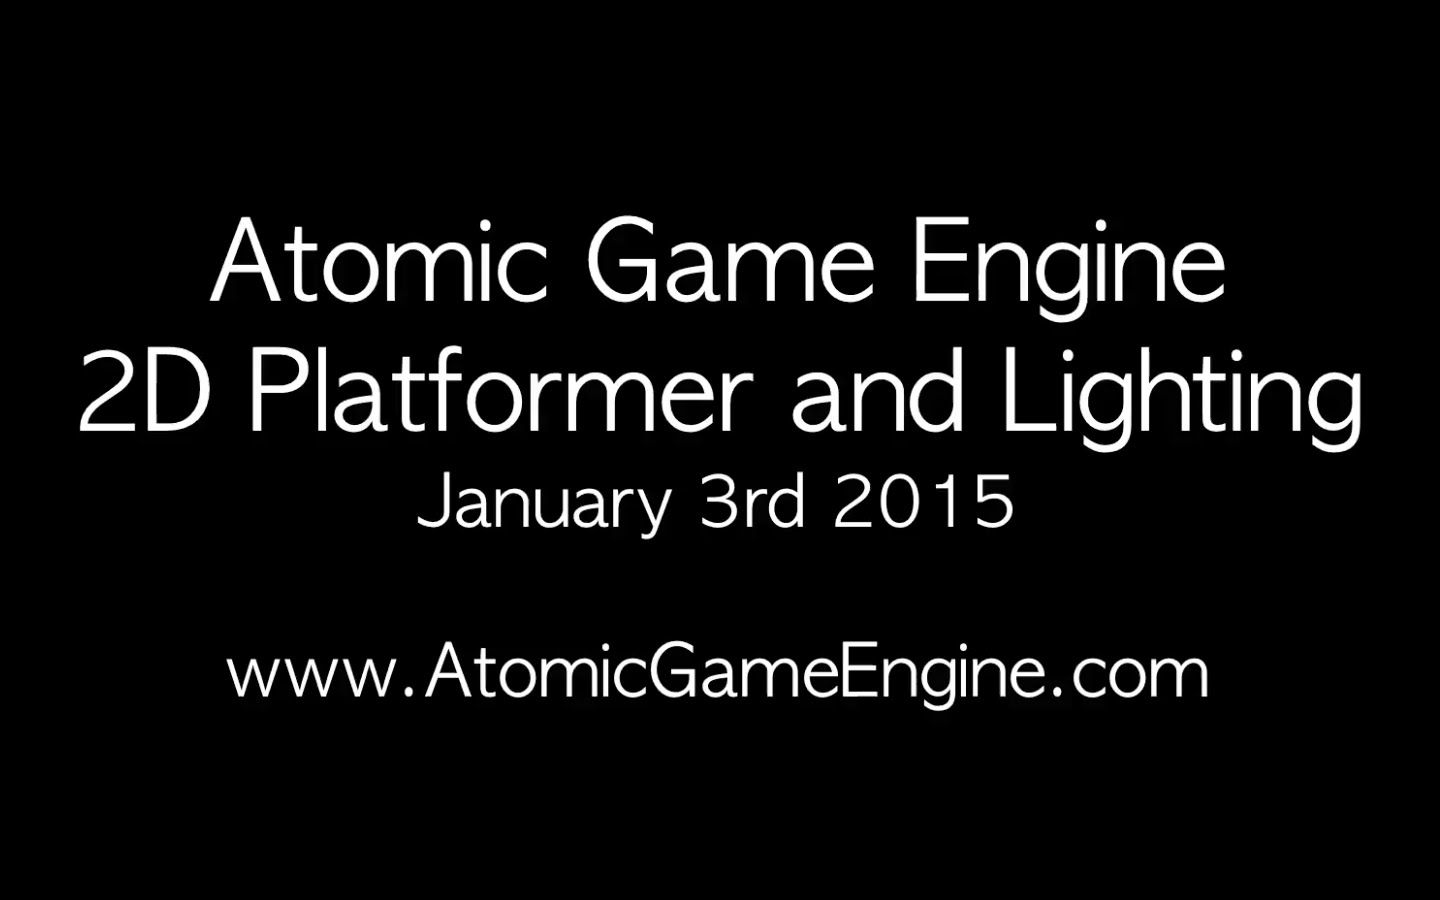 Atomic Game Engine - 2D Platformer & Lighting | Game